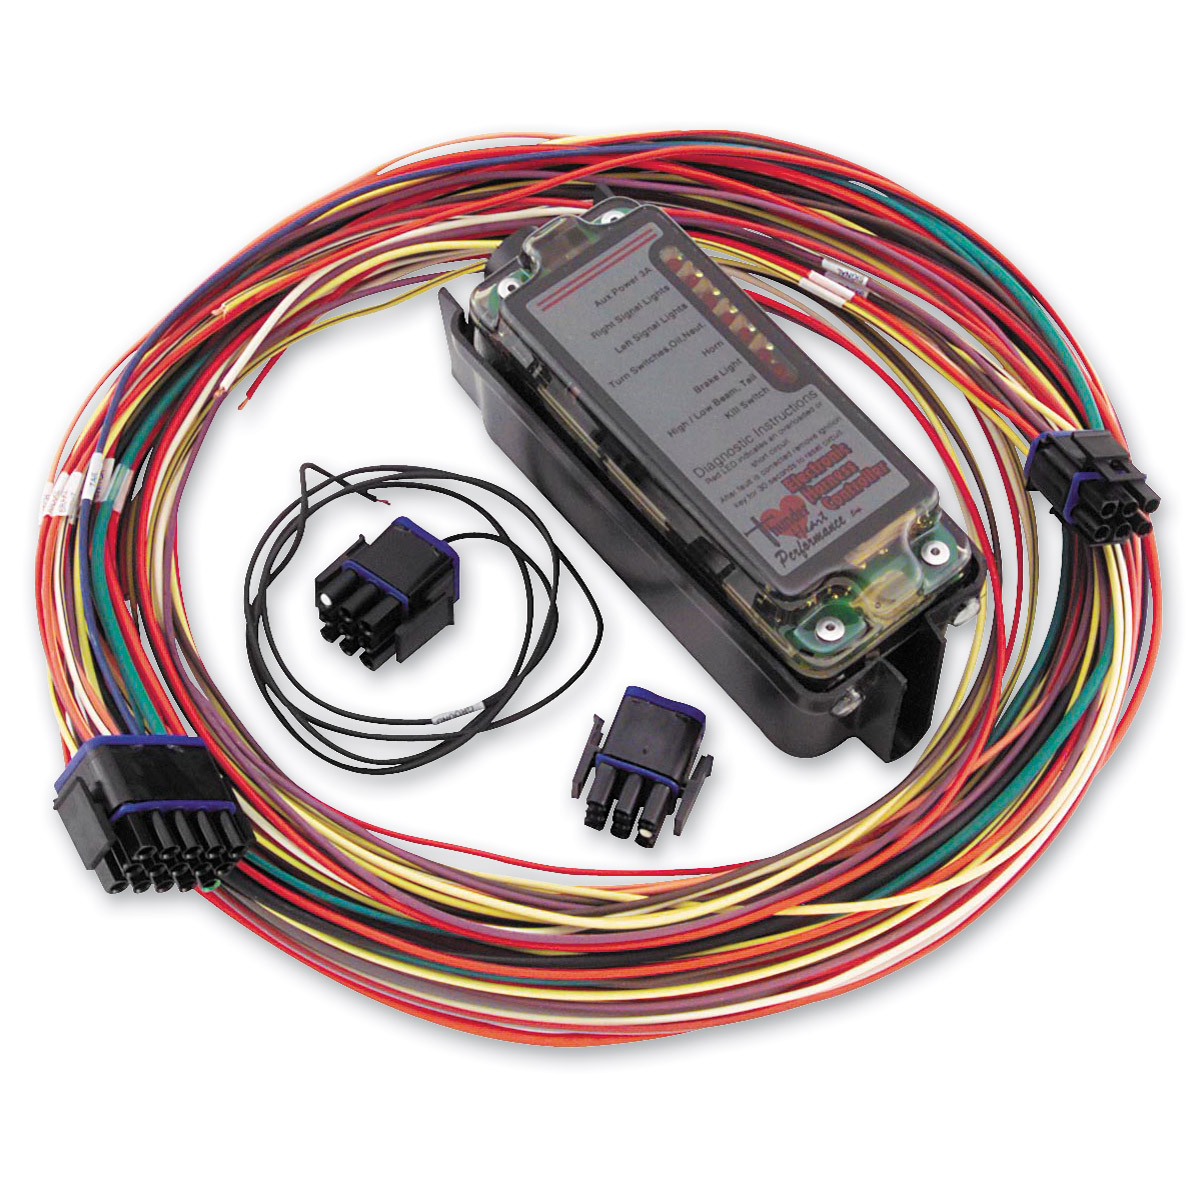 thunder heart performance complete electronic harness controller rh jpcycles com wiring harness kitf350supperduty2004ford wiring harness kit for utility trailer